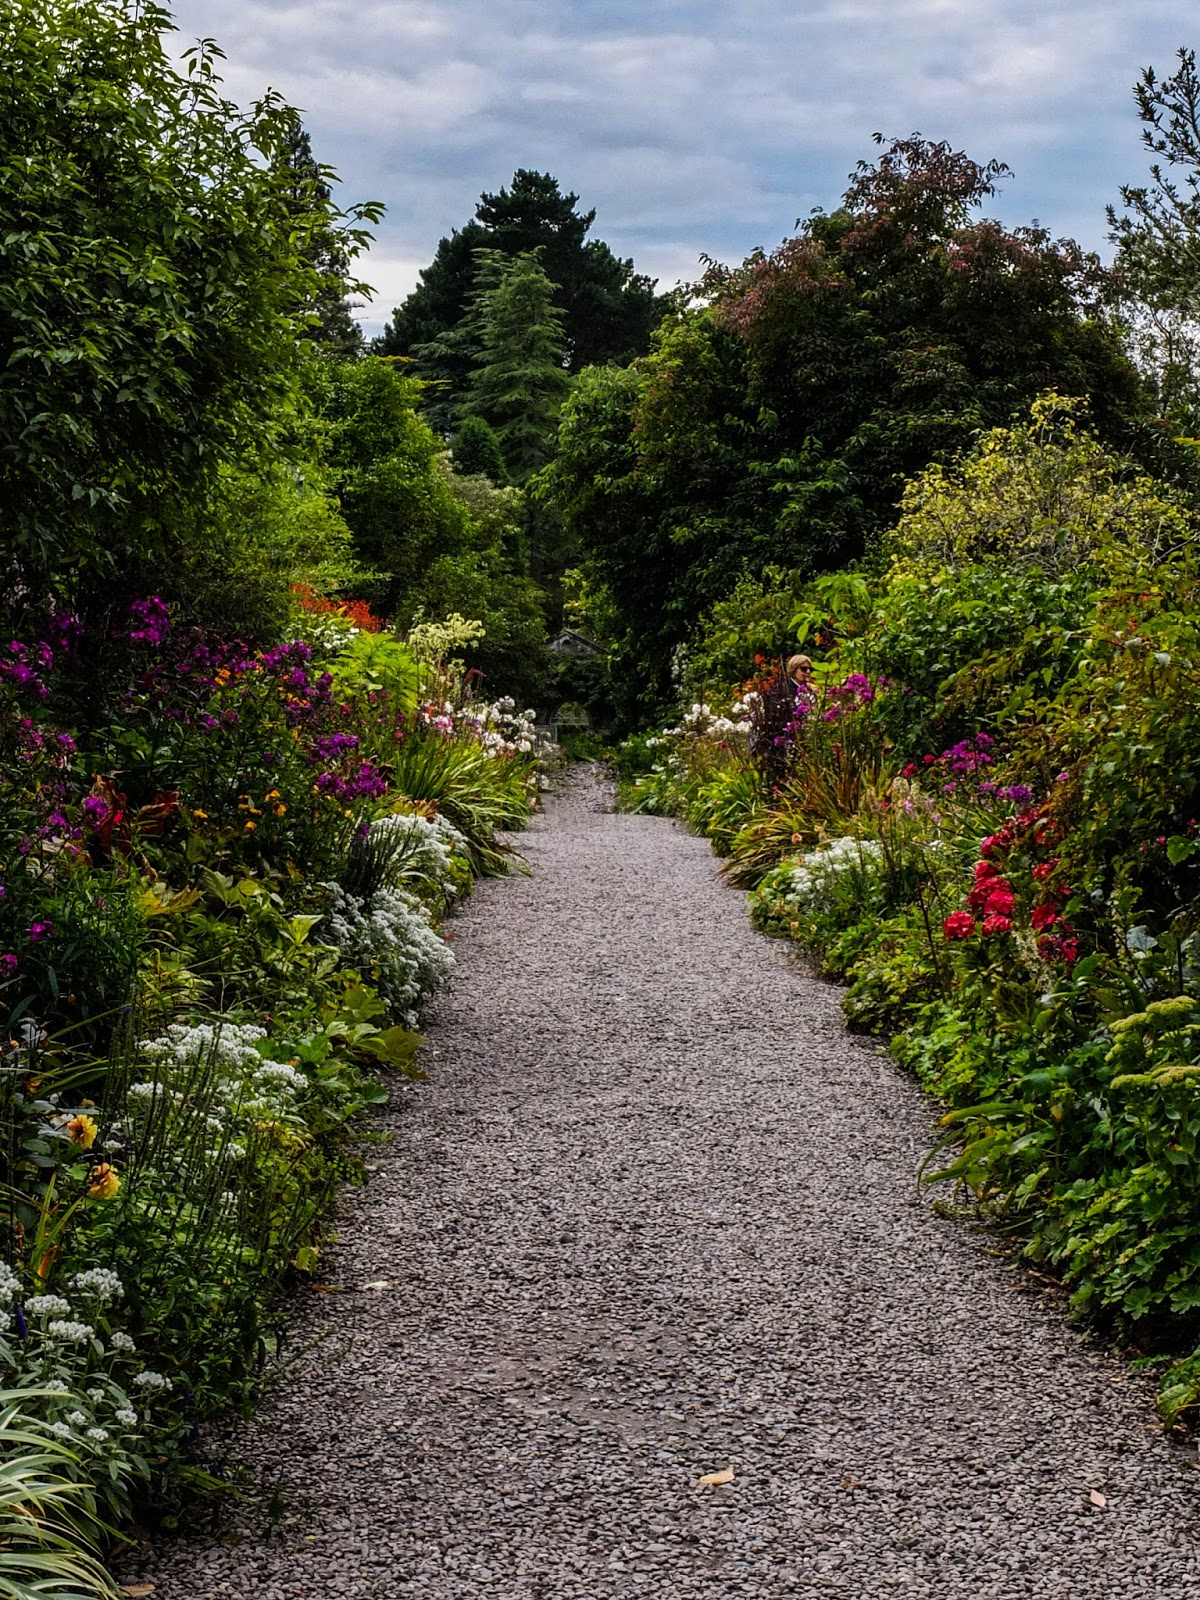 A pathway in the gardens on Garnish Island in Bantry Bay.